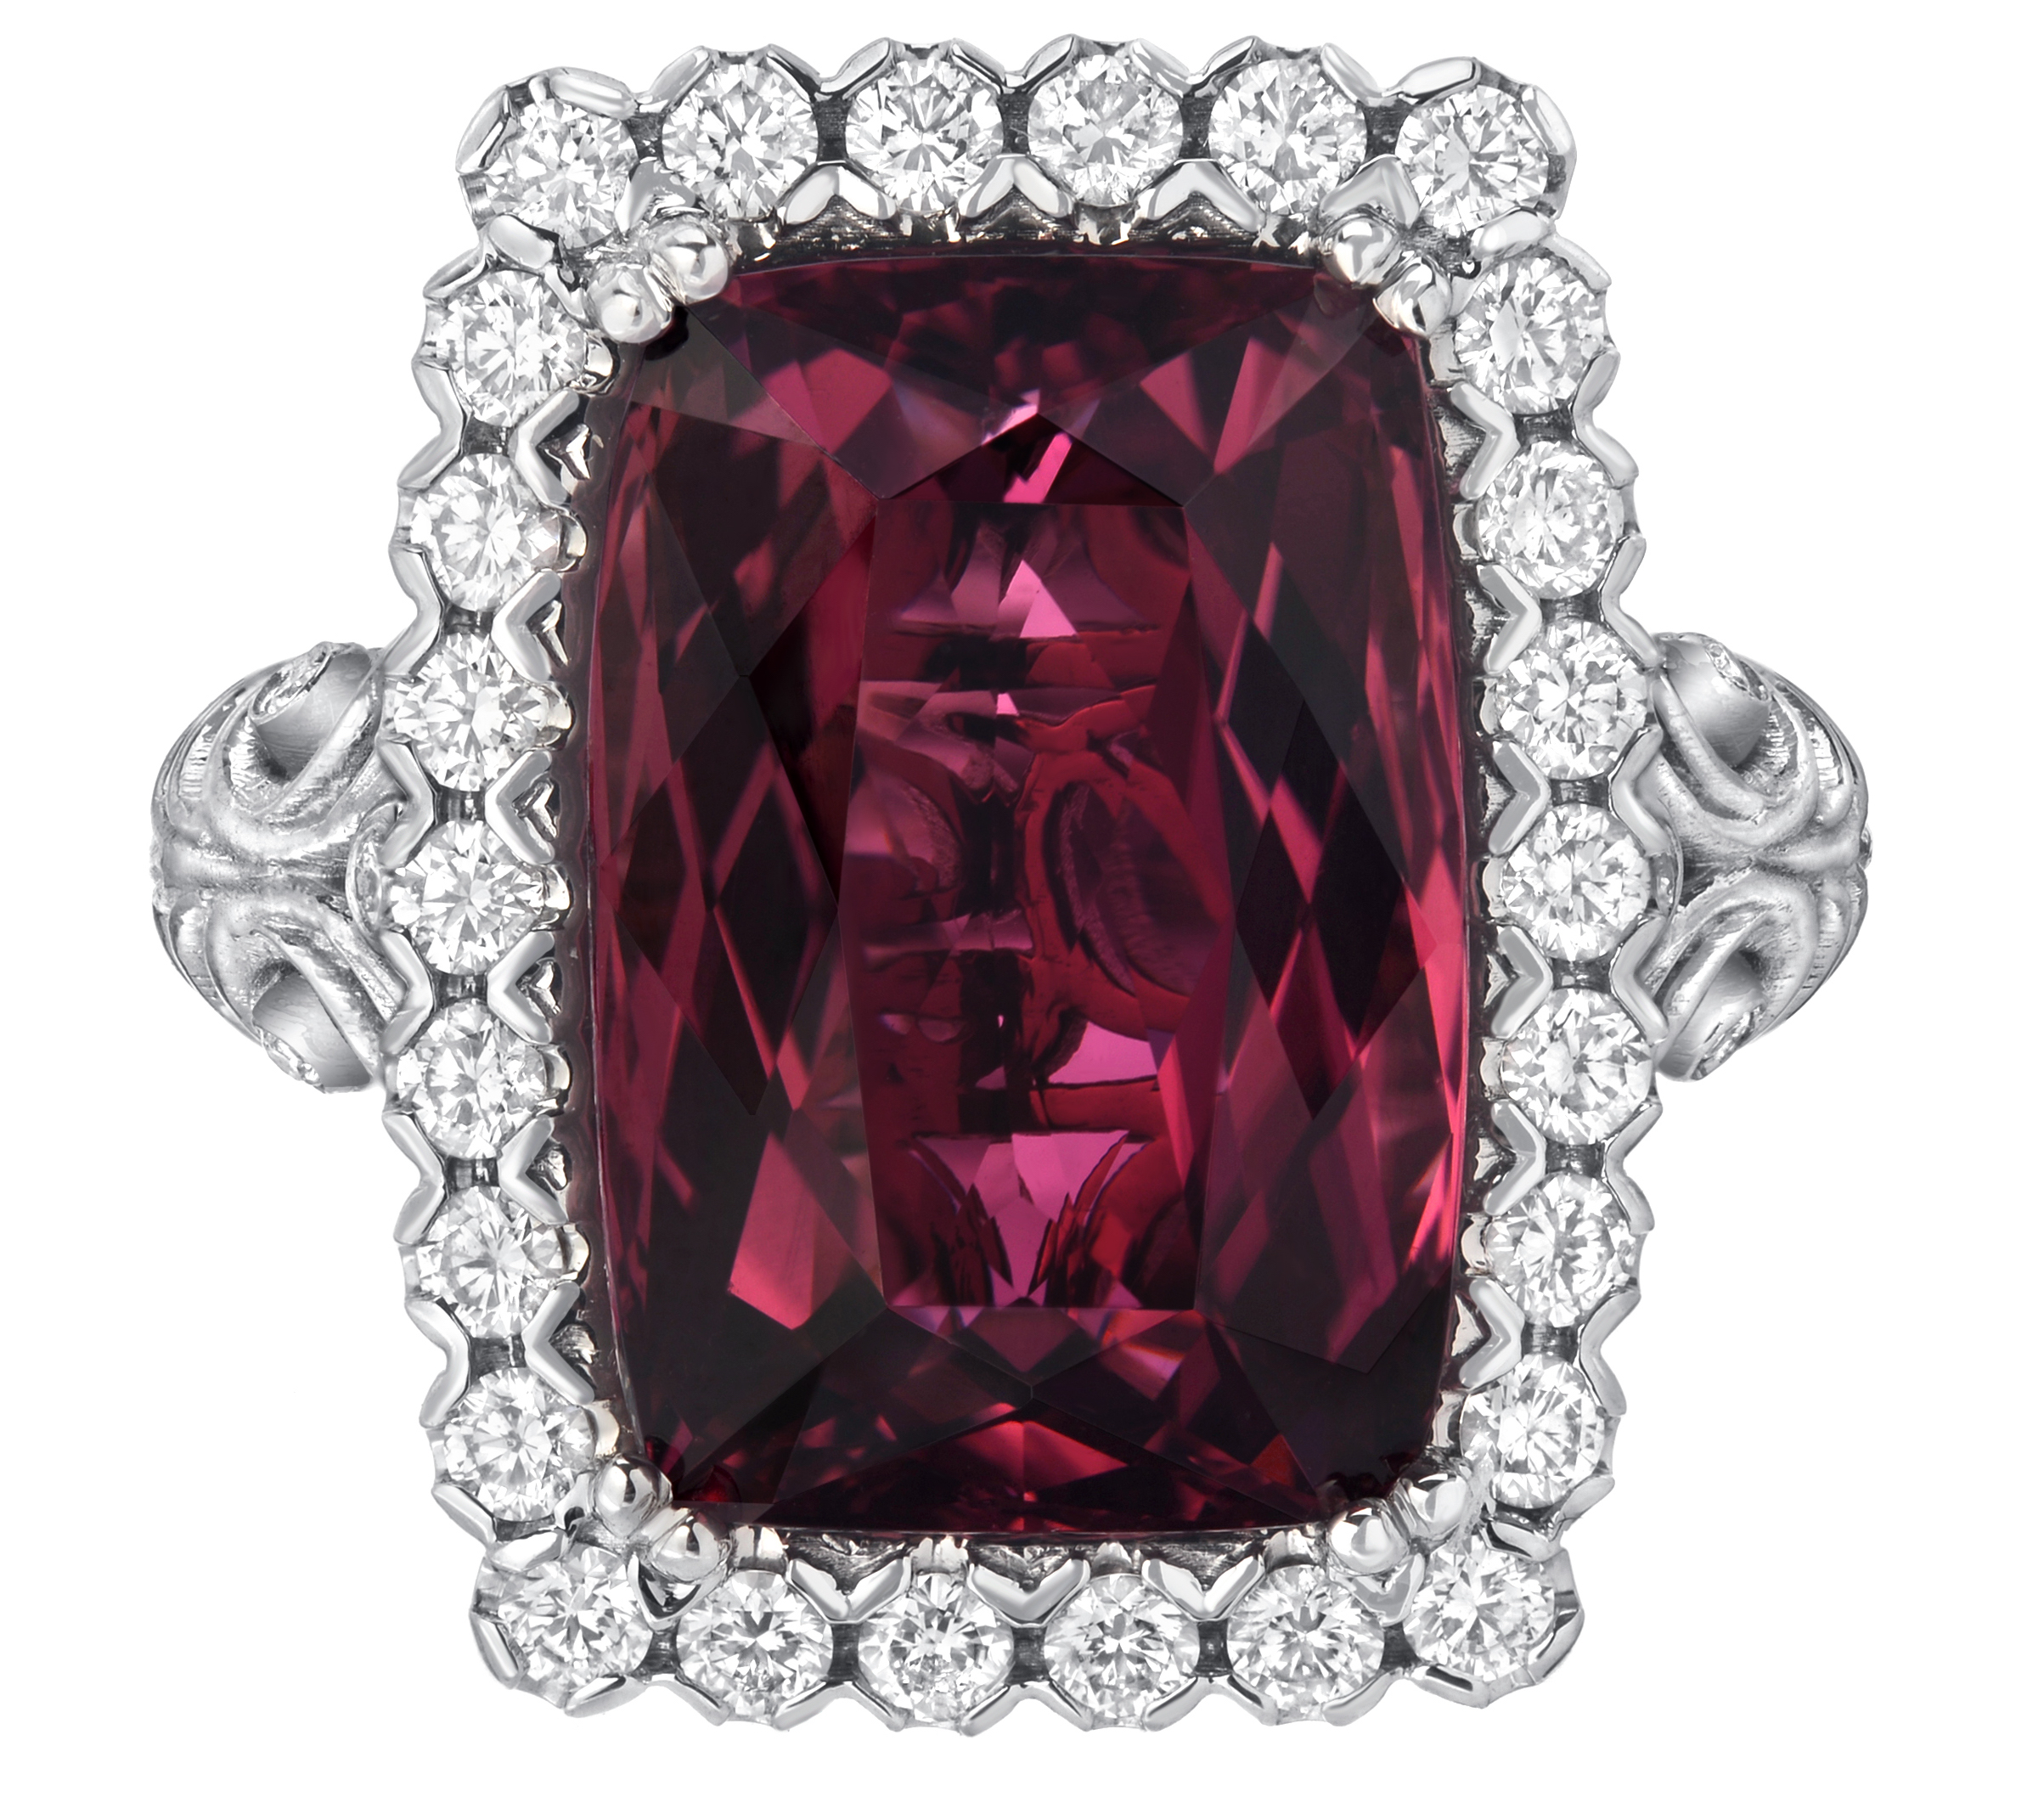 Dallas Prince Black Orchid tourmaline ring | JCK On Your Market